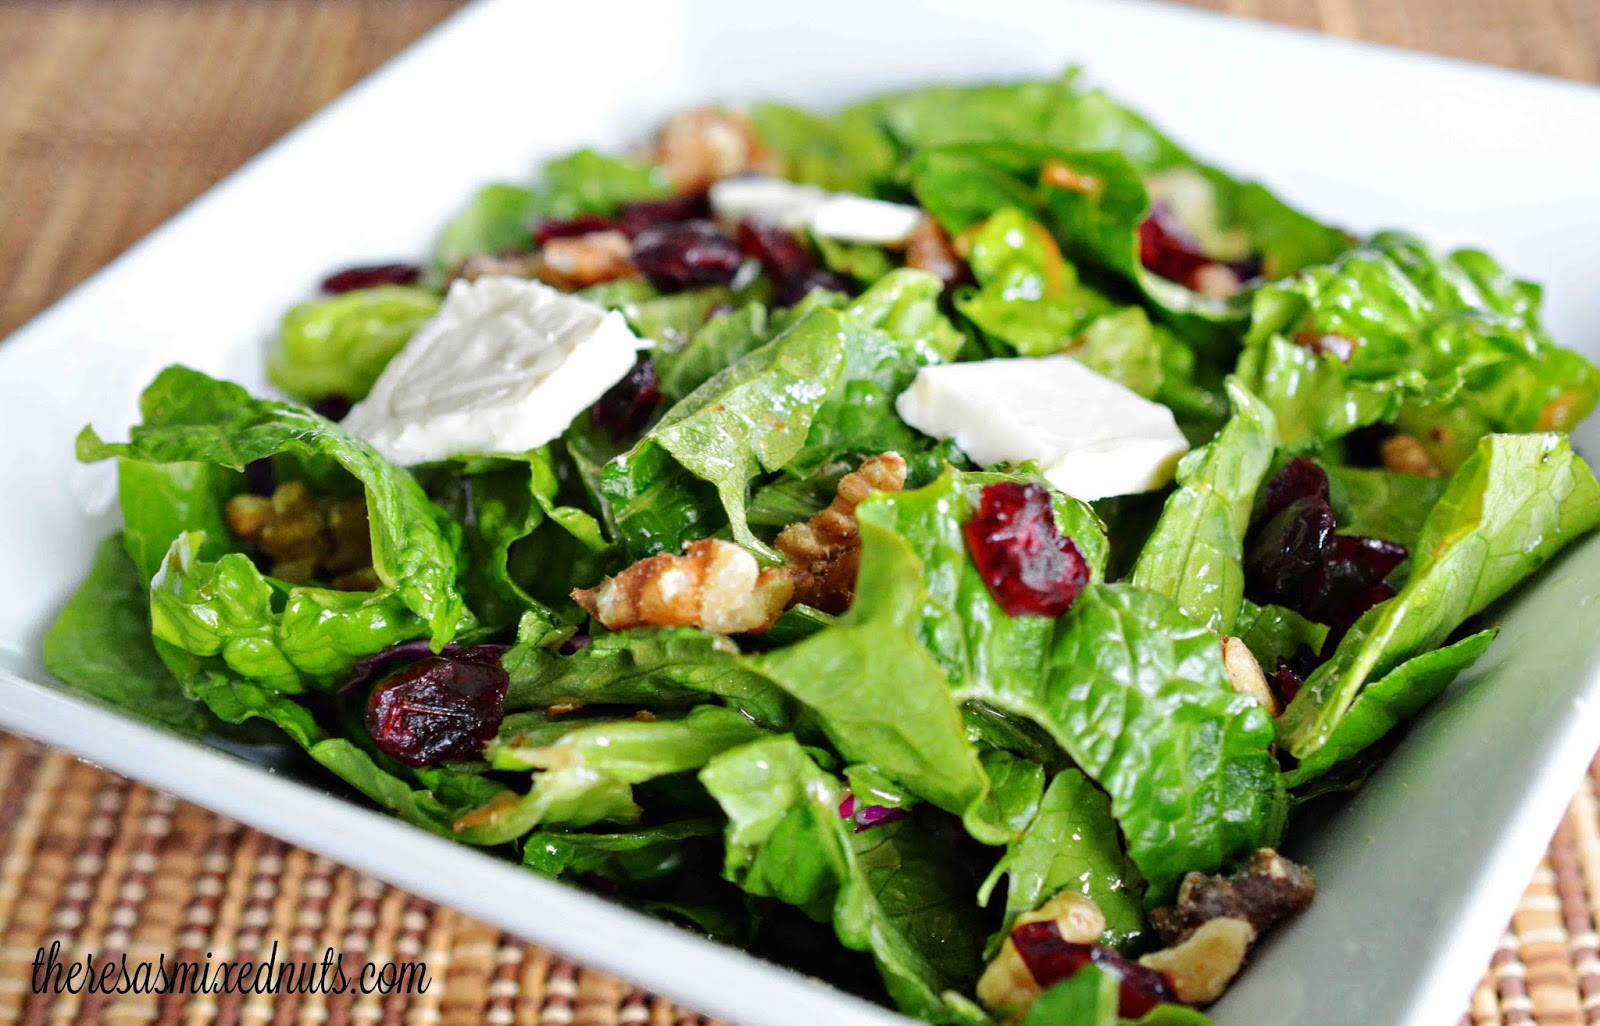 Theresa's Mixed Nuts: Mixed Greens with Brie and Cranberries